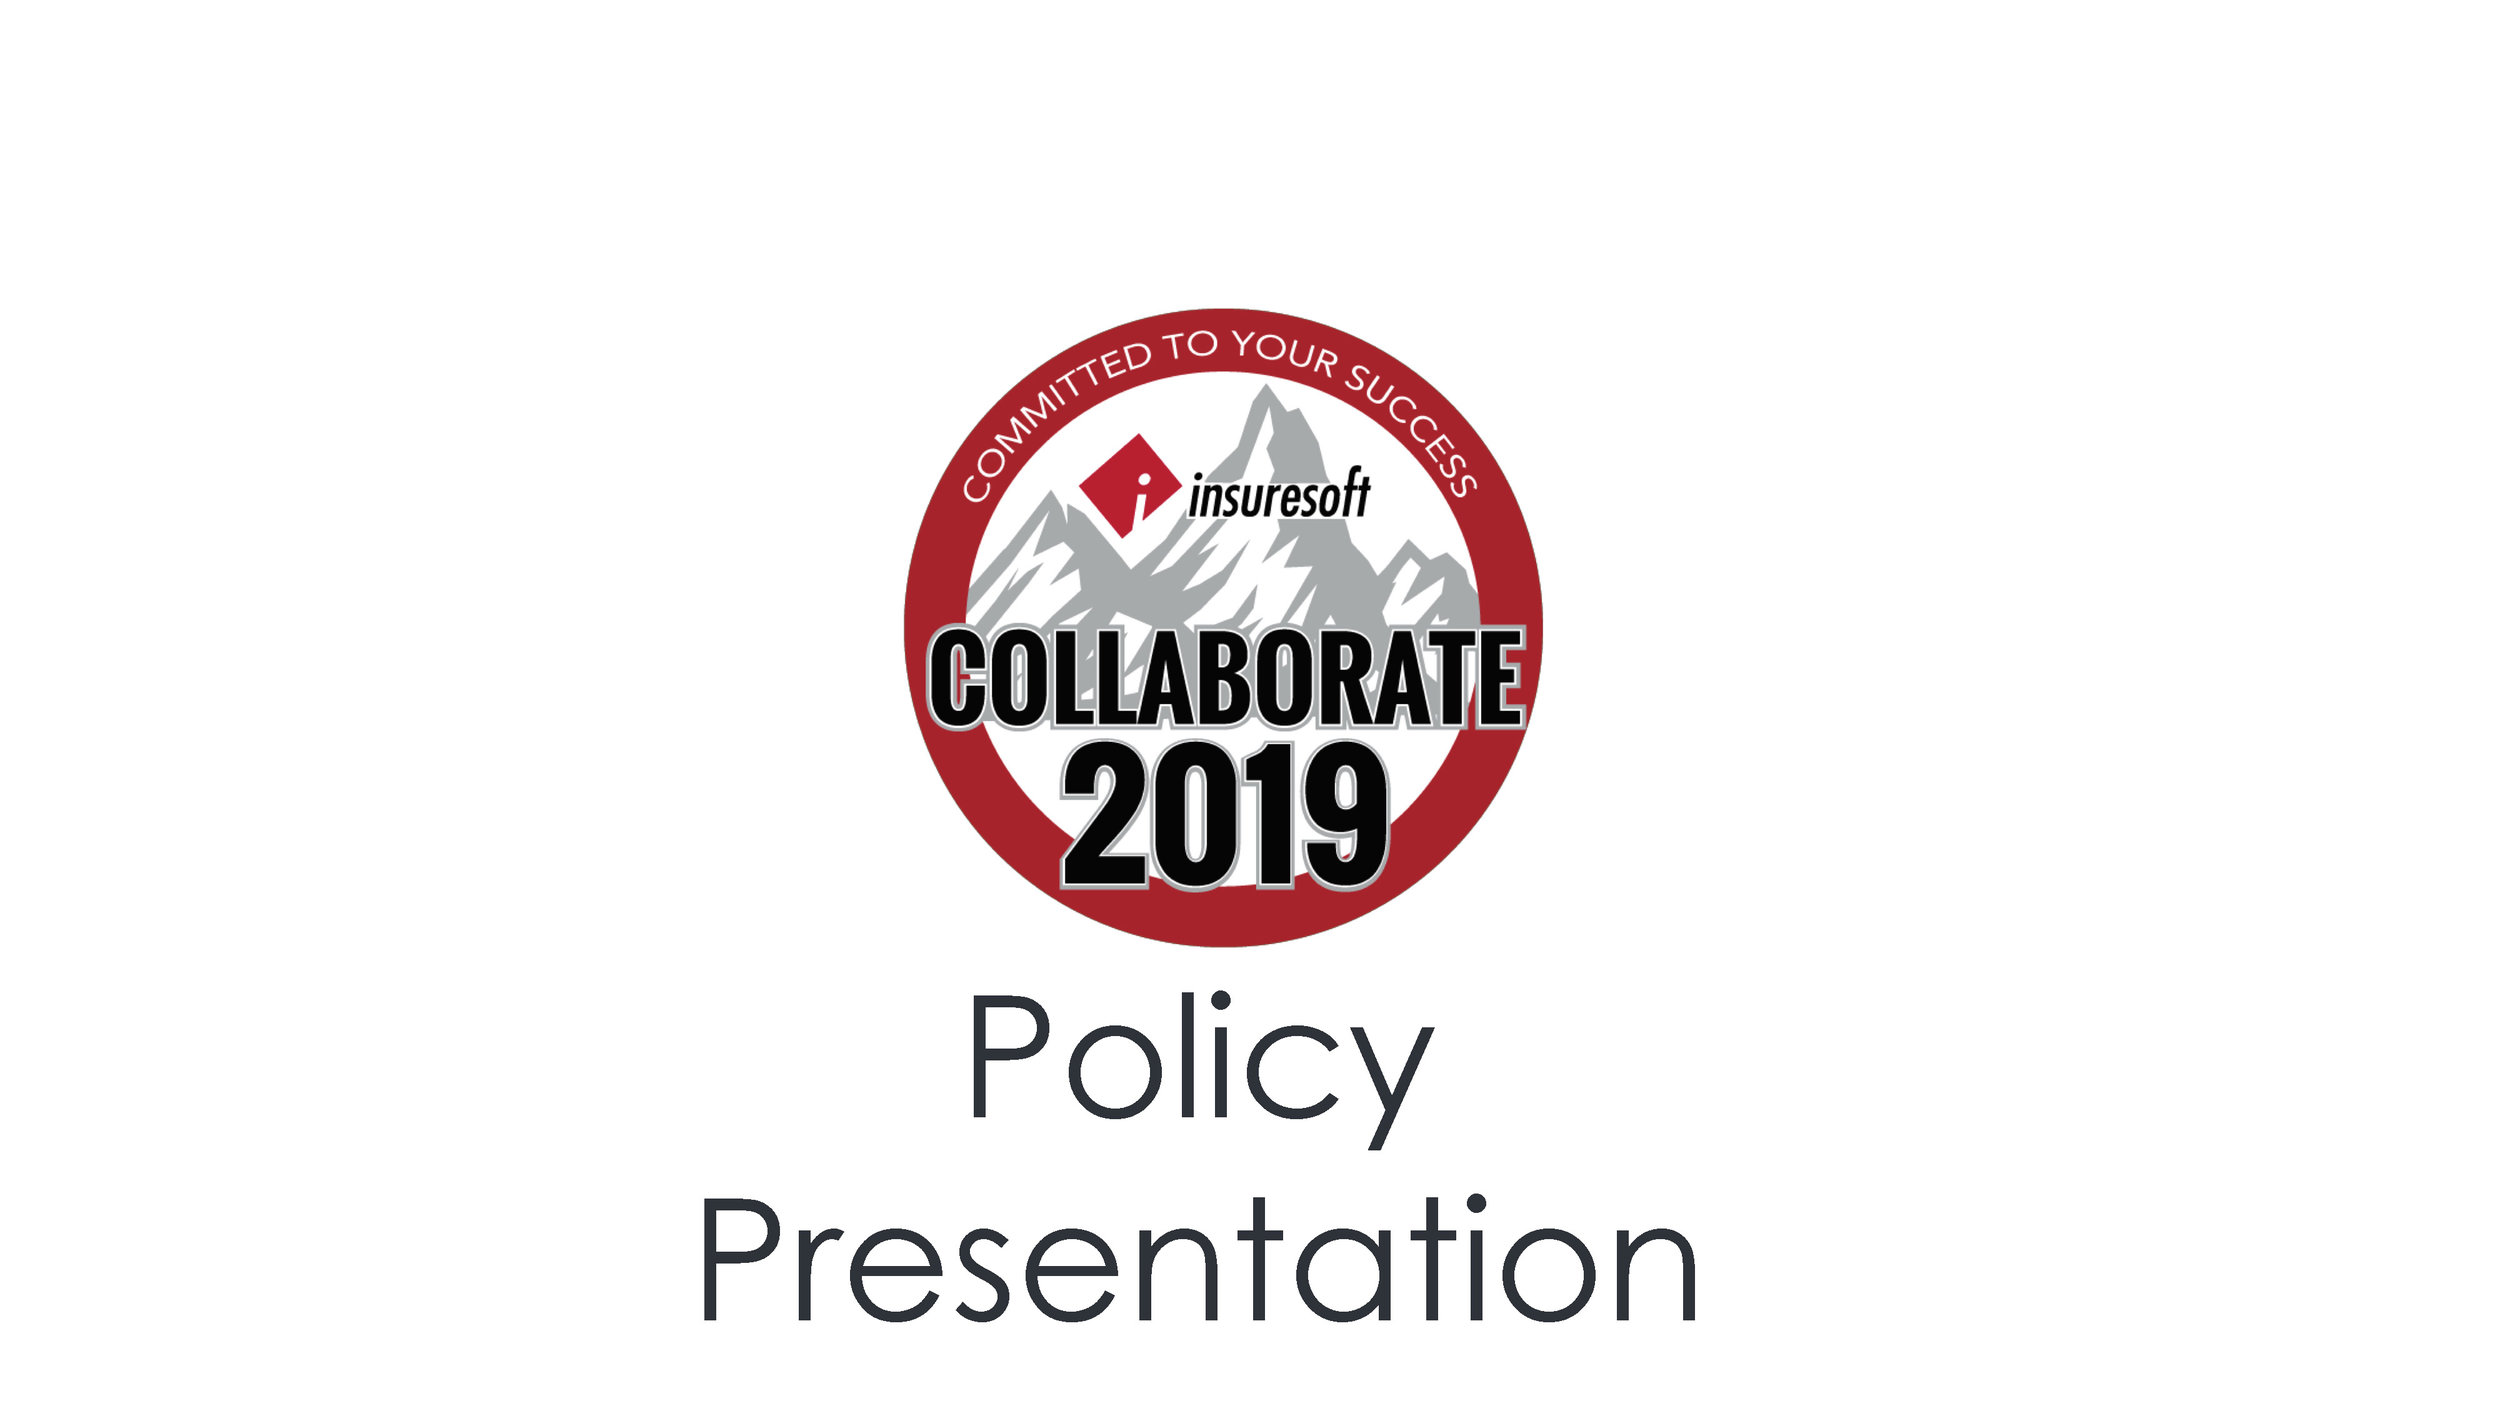 Policy Presentation & Roundtable